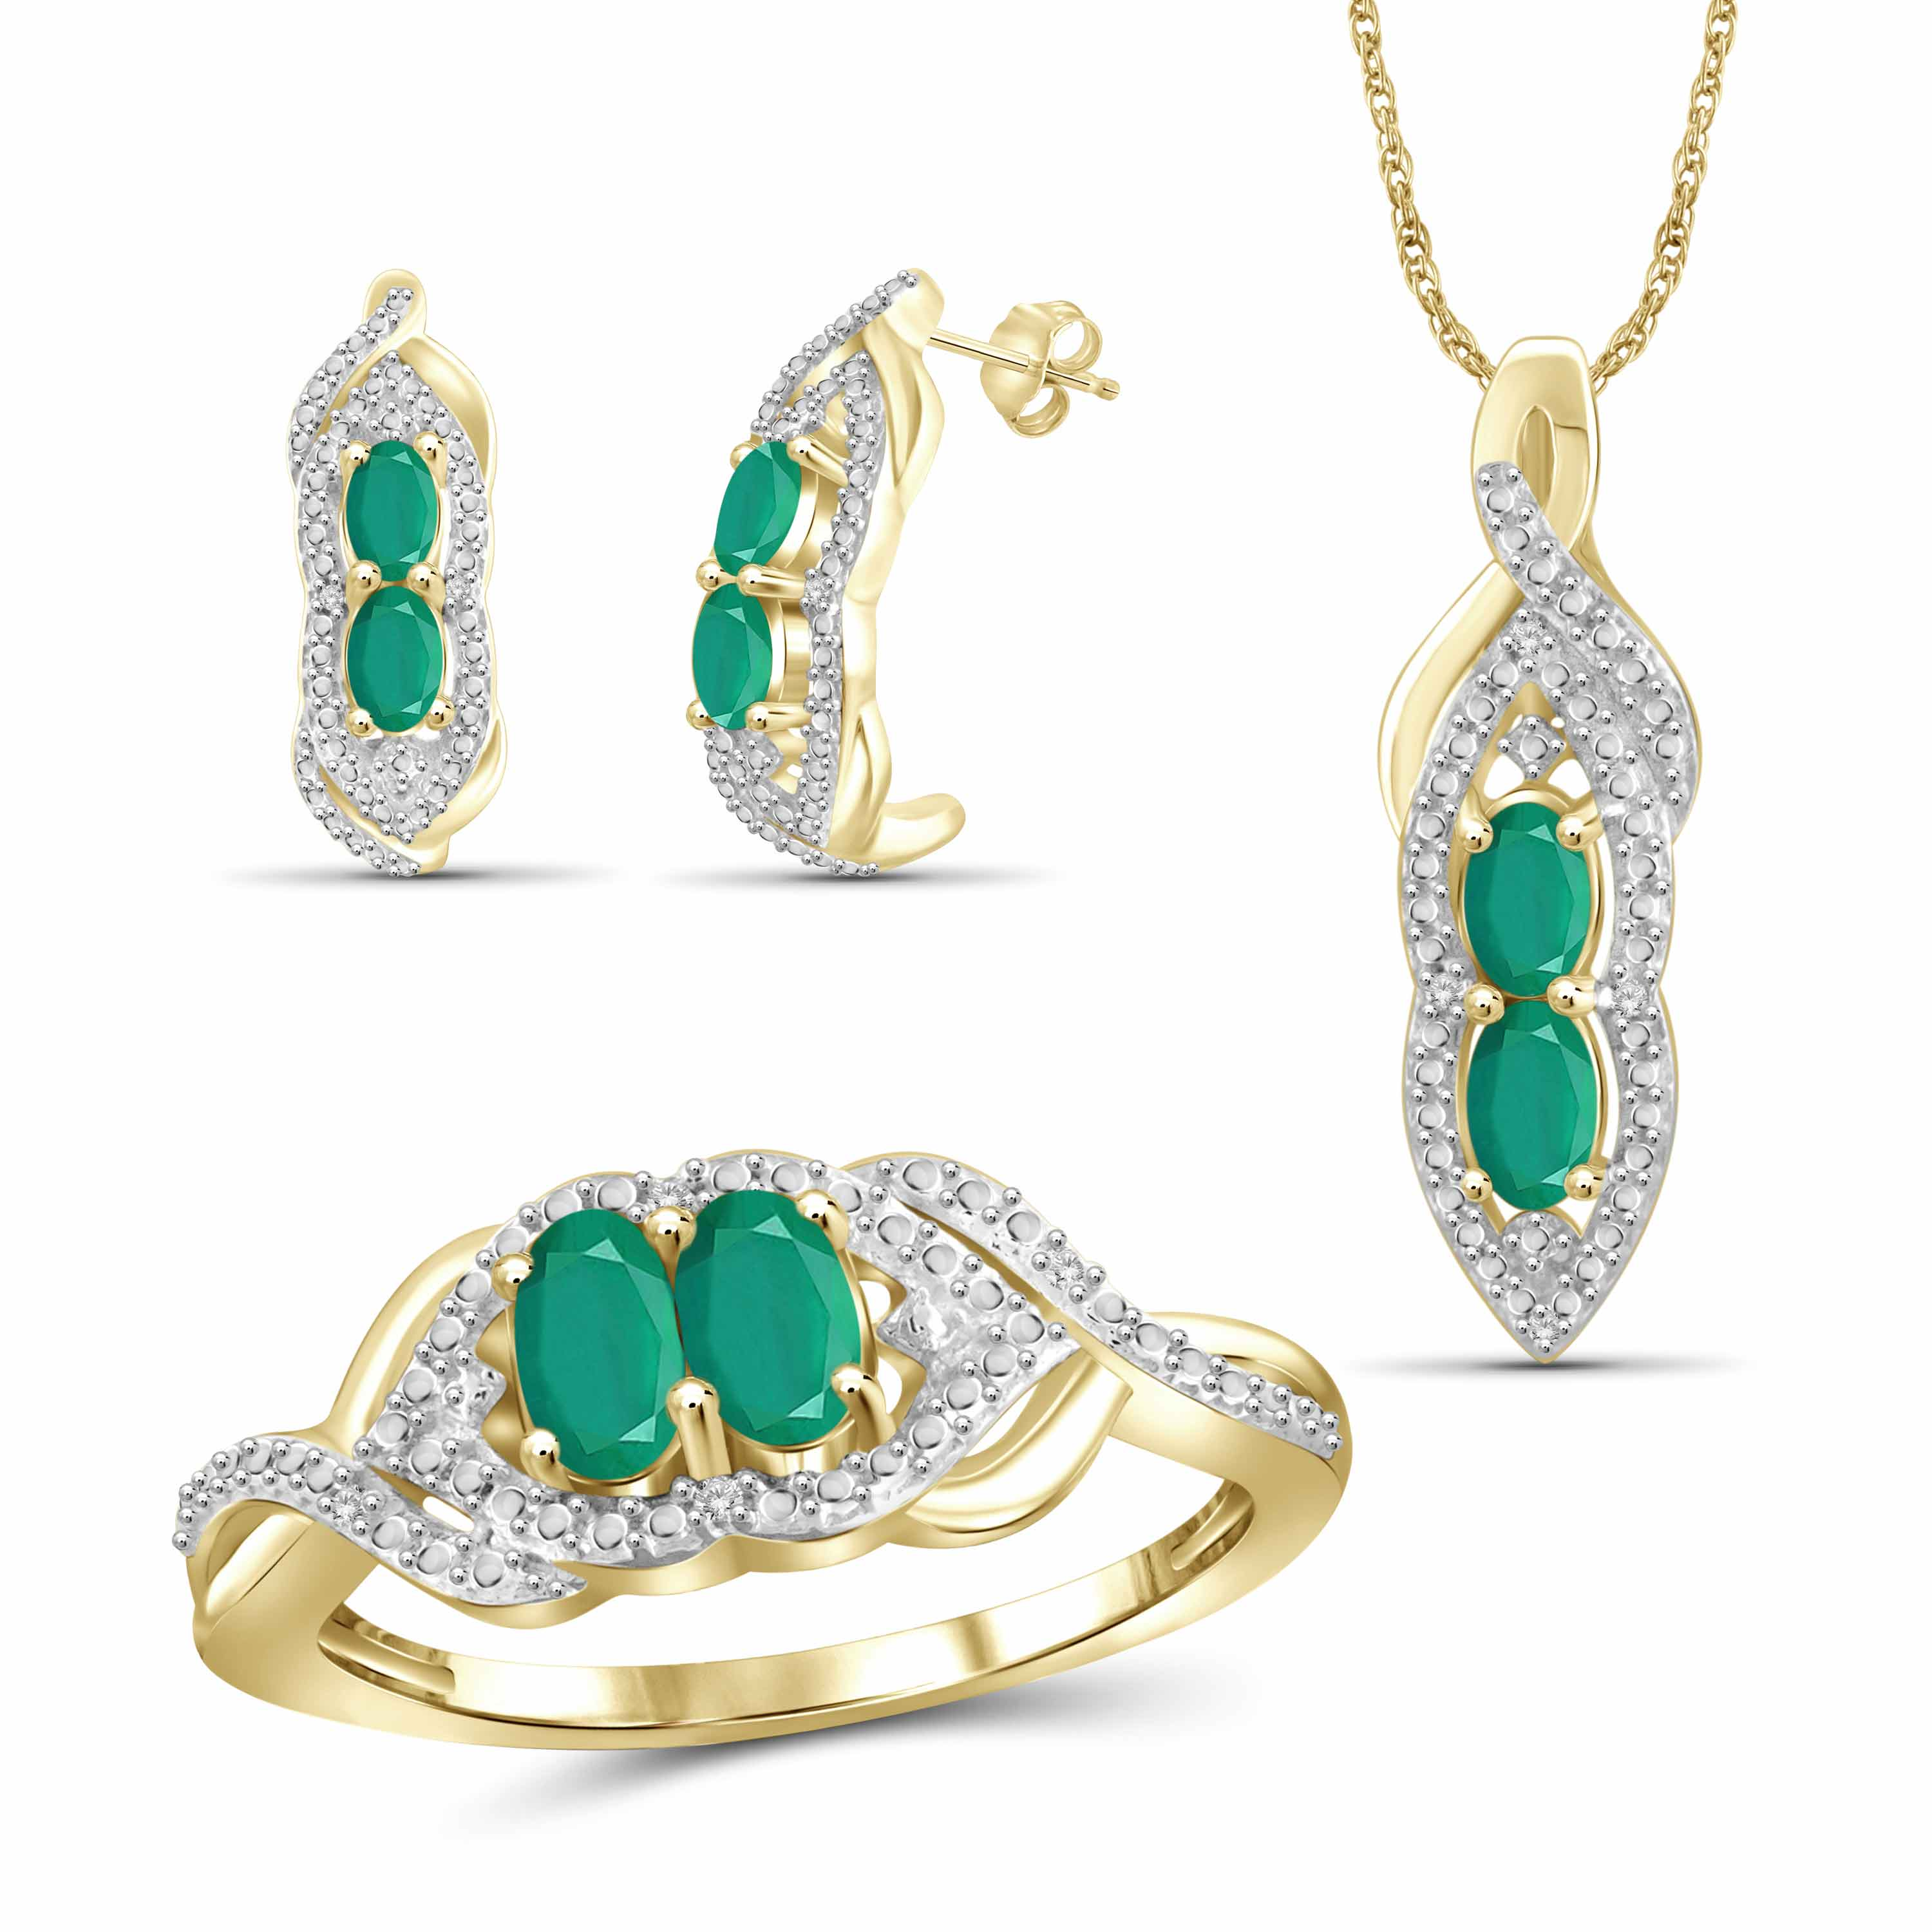 JewelersClub 1 3/4 Carat T.G.W. Emerald And White Diamond Accent 14K Gold over Silver 3-Piece Jewelry set